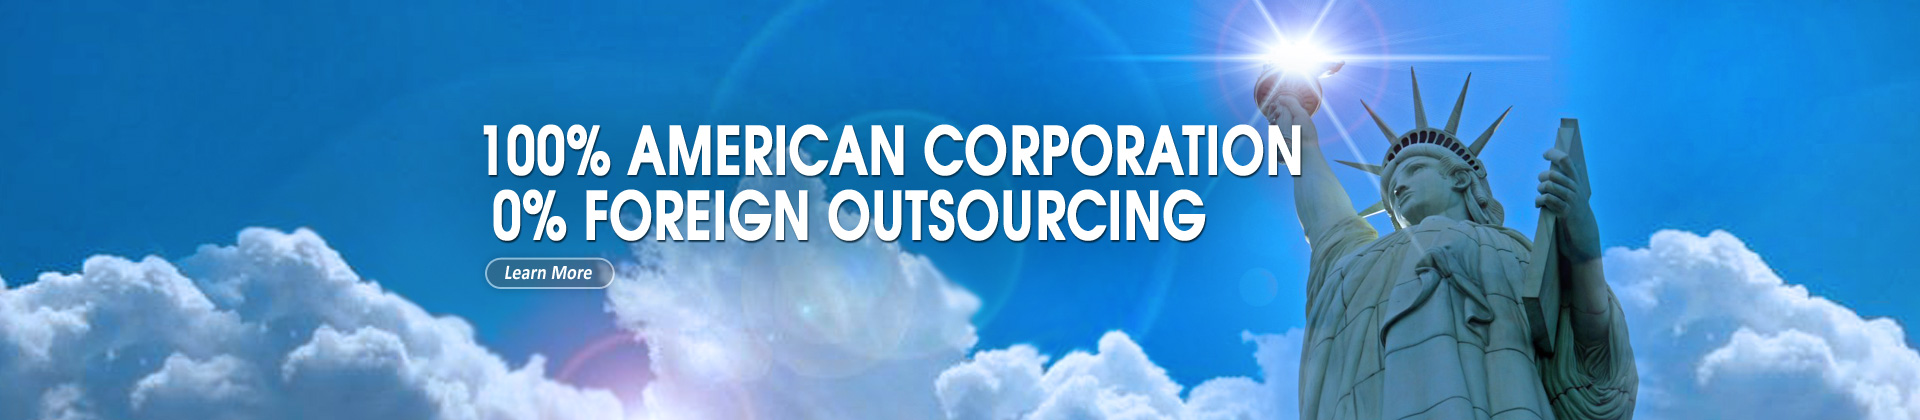 Business Edge works only with American workers and does not outsource